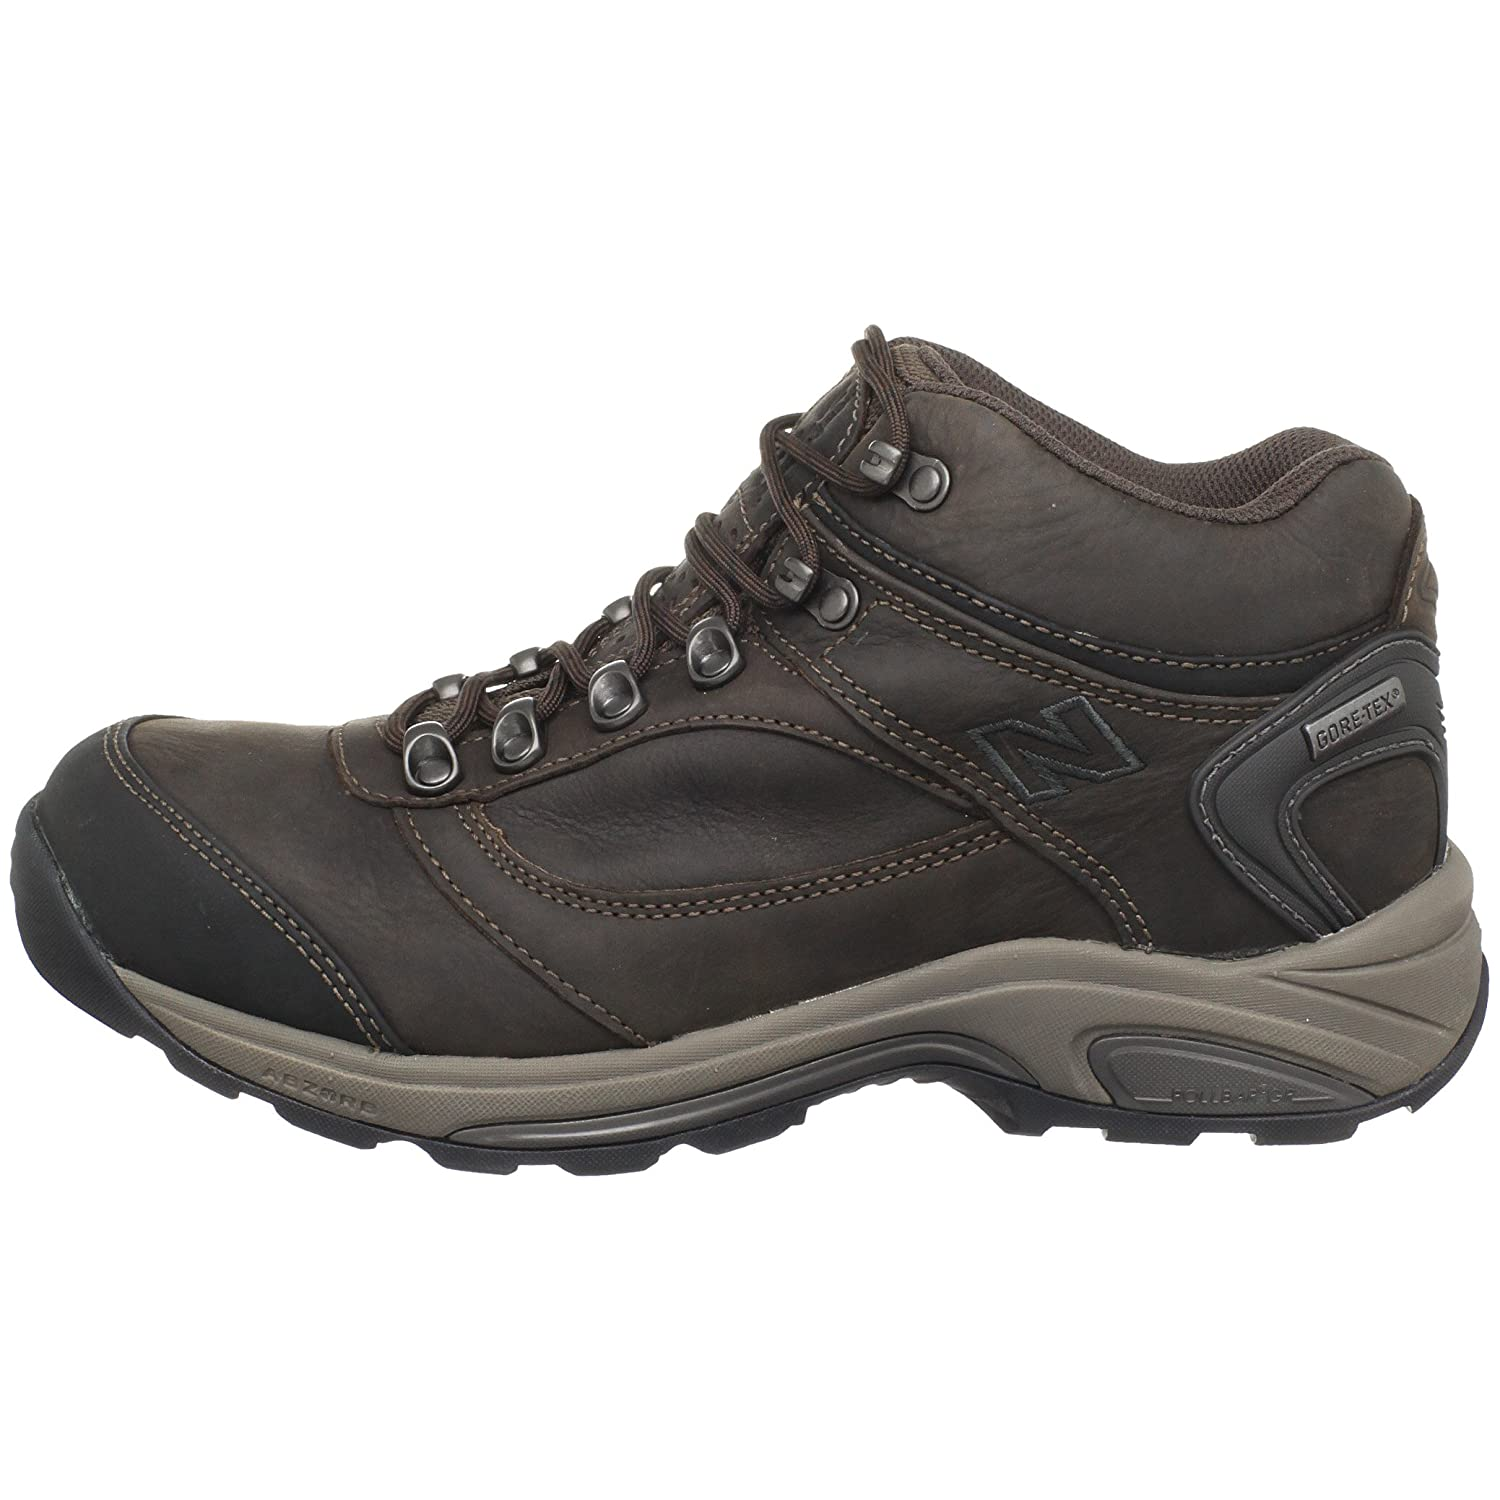 a8974d7cb2bb2 New Balance MW978 Gore-TEX Waterproof Walking Boots (4E Width):  Amazon.co.uk: Shoes & Bags